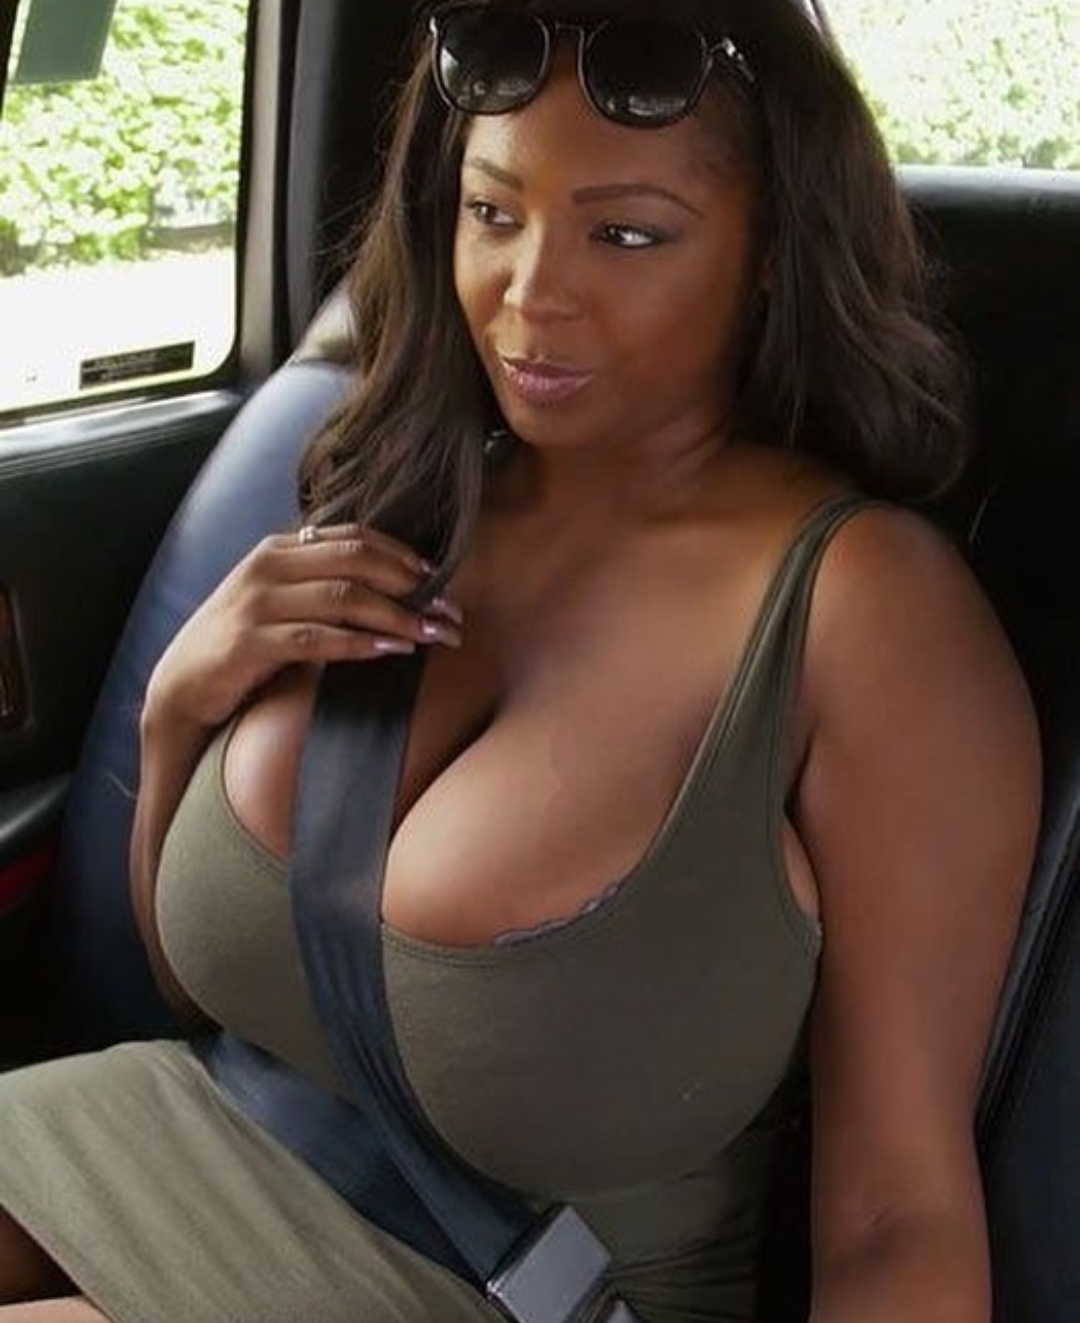 Chubby beugte busty uber madchen sich